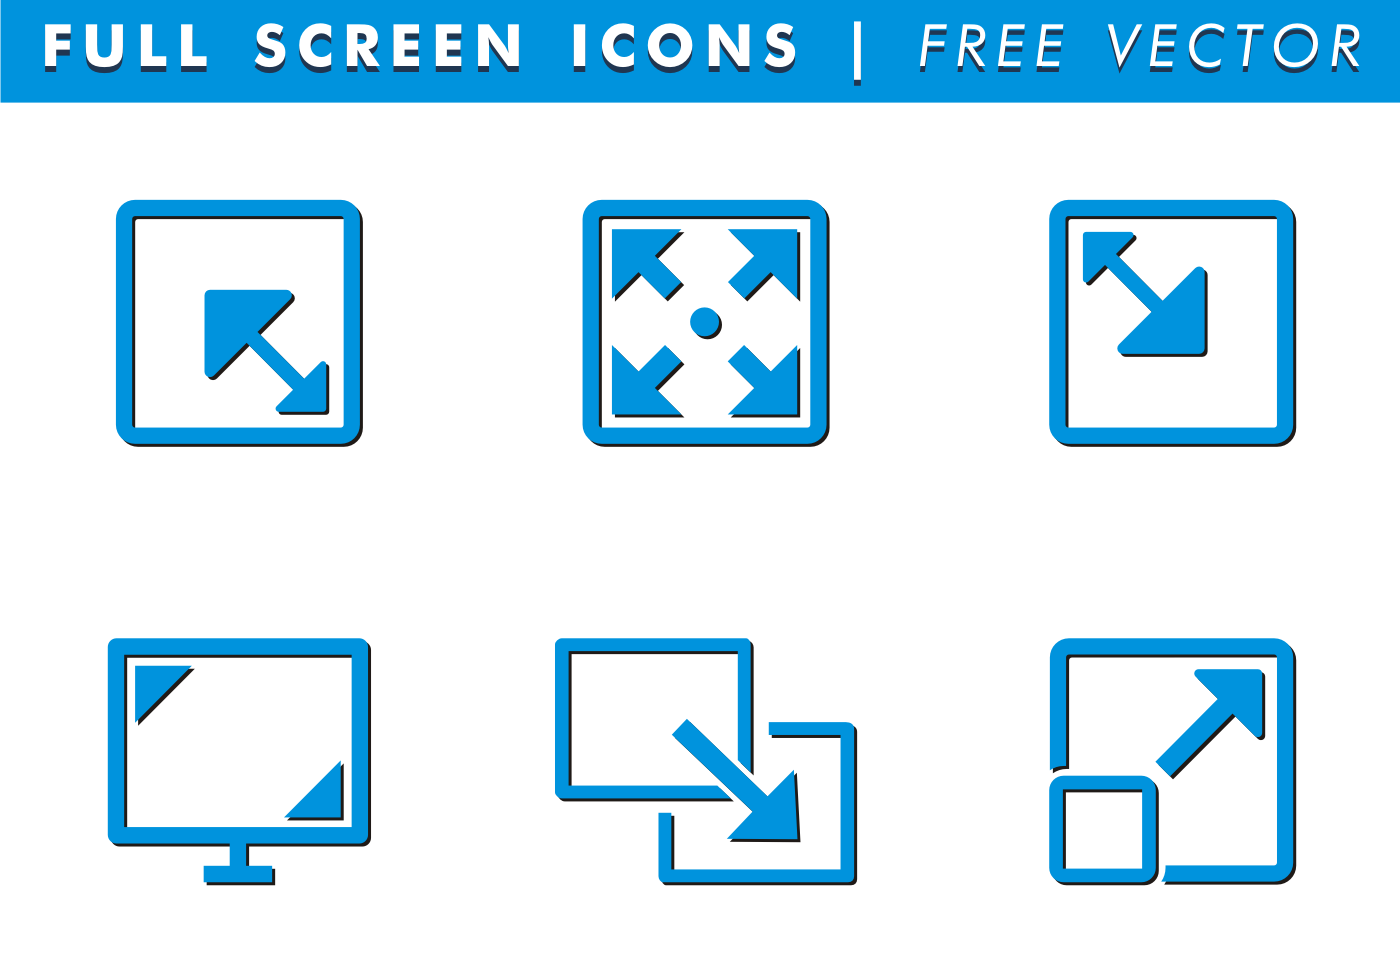 Download Free Vectors, Clipart Graphics & Vector Art